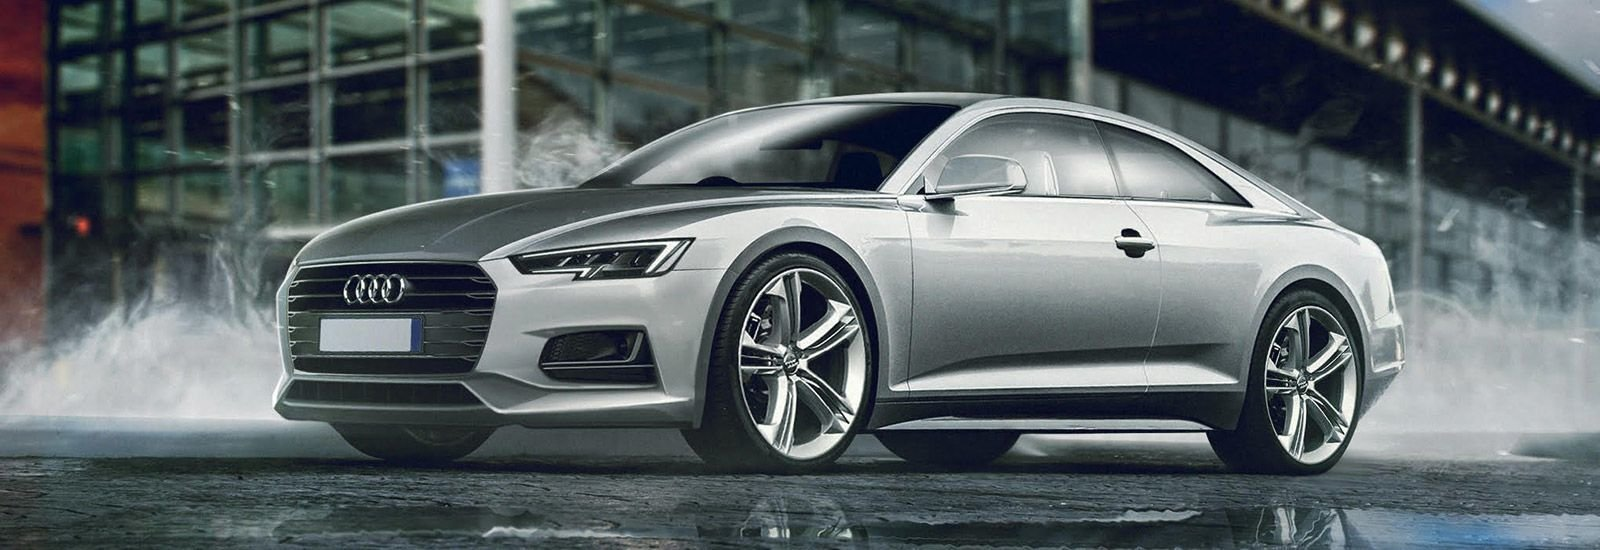 Latest New Audi A9 Price Specs And Release Date Carwow Free Download